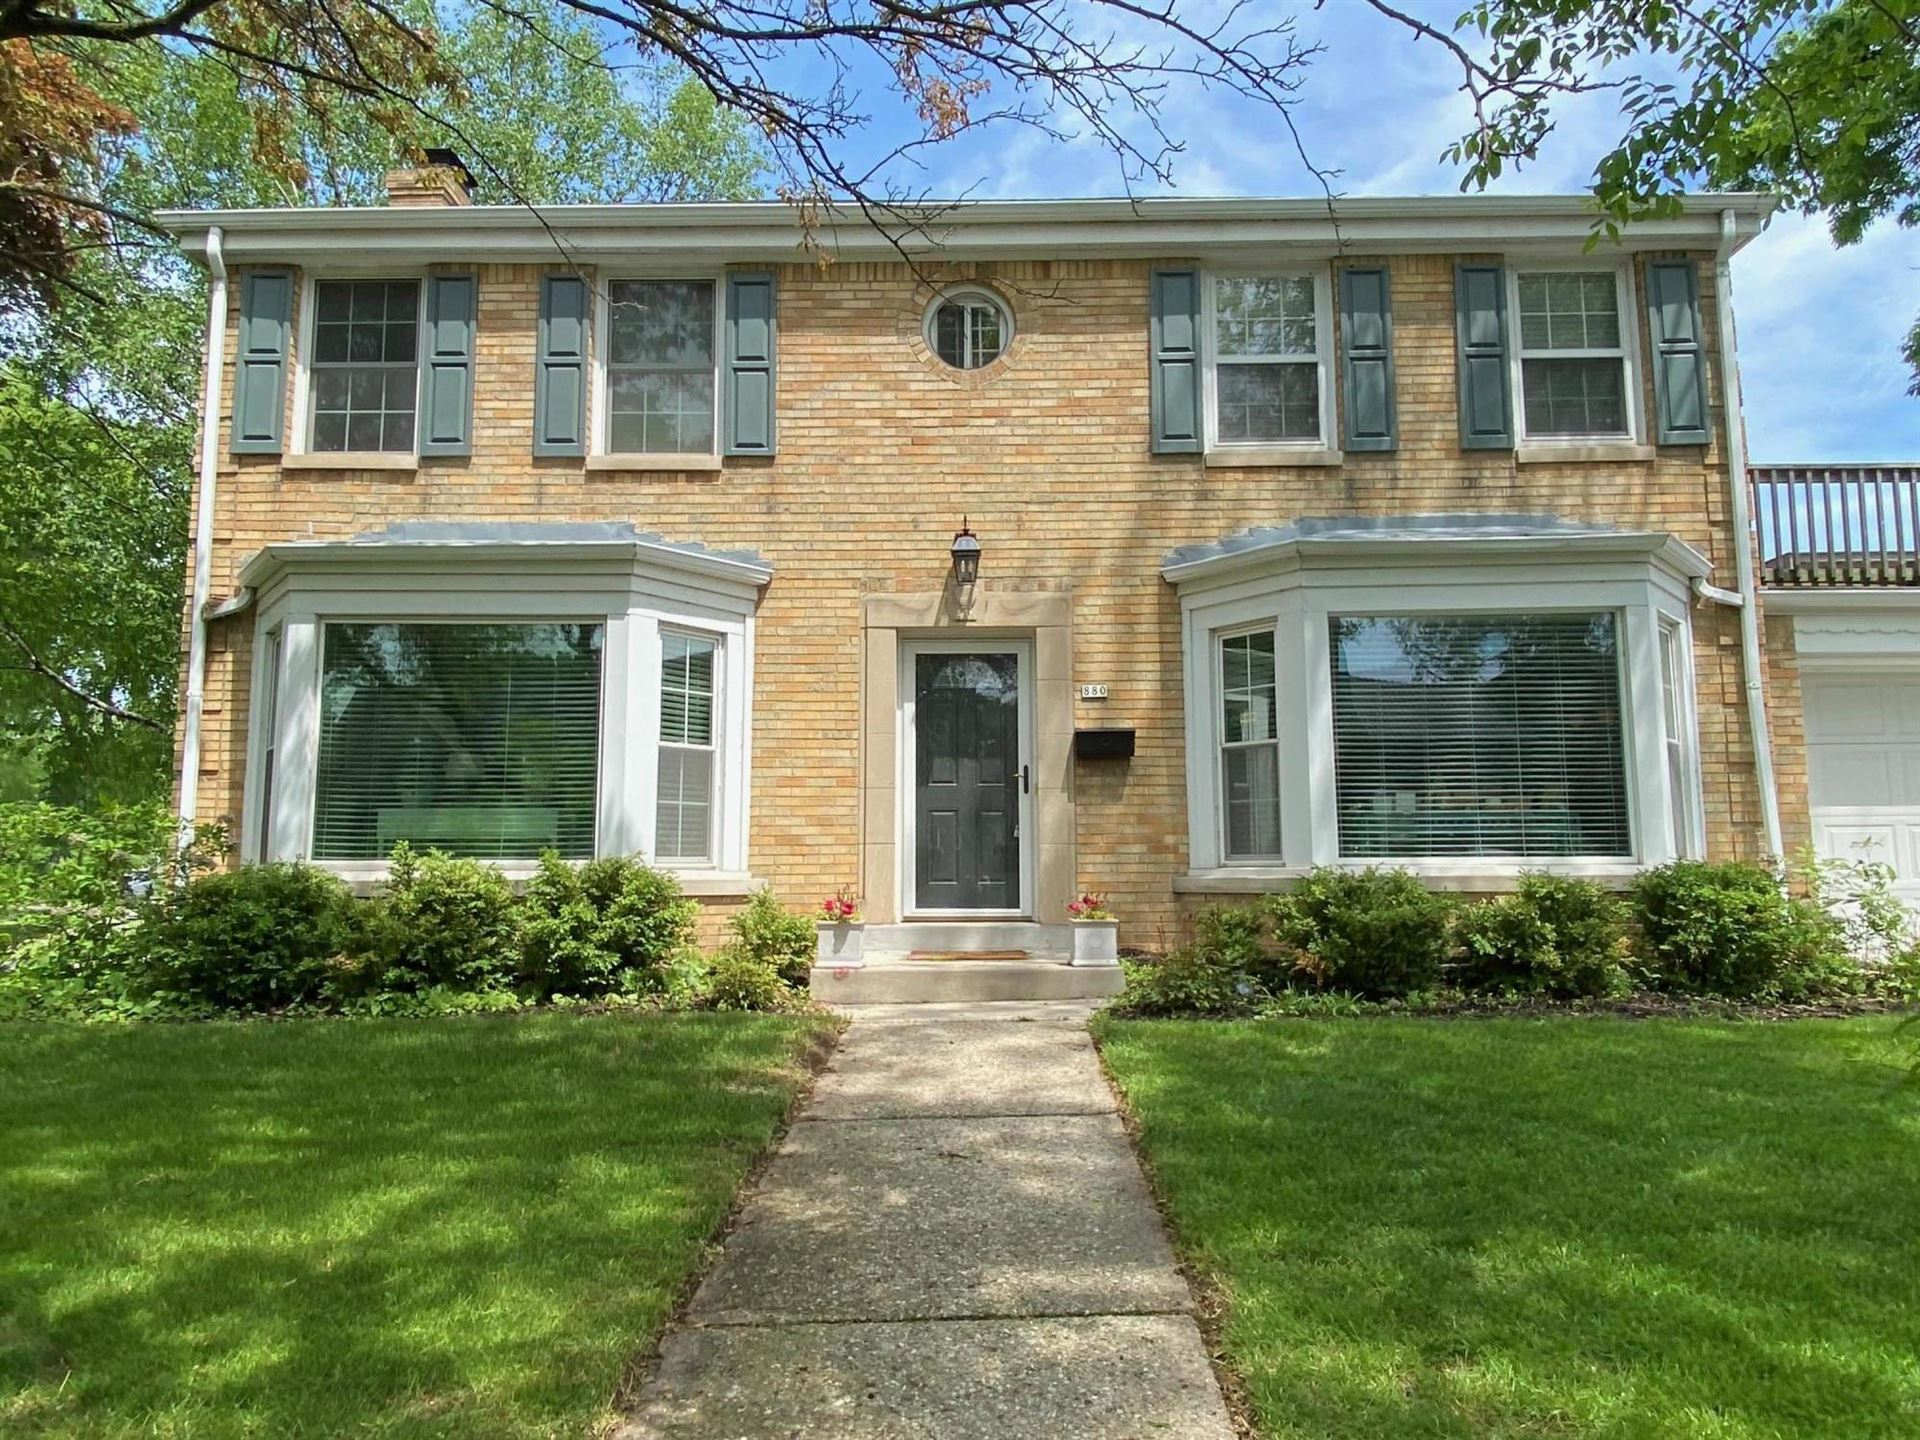 880 E Silver Spring Dr, Whitefish Bay, WI 53217 - #: 1692261